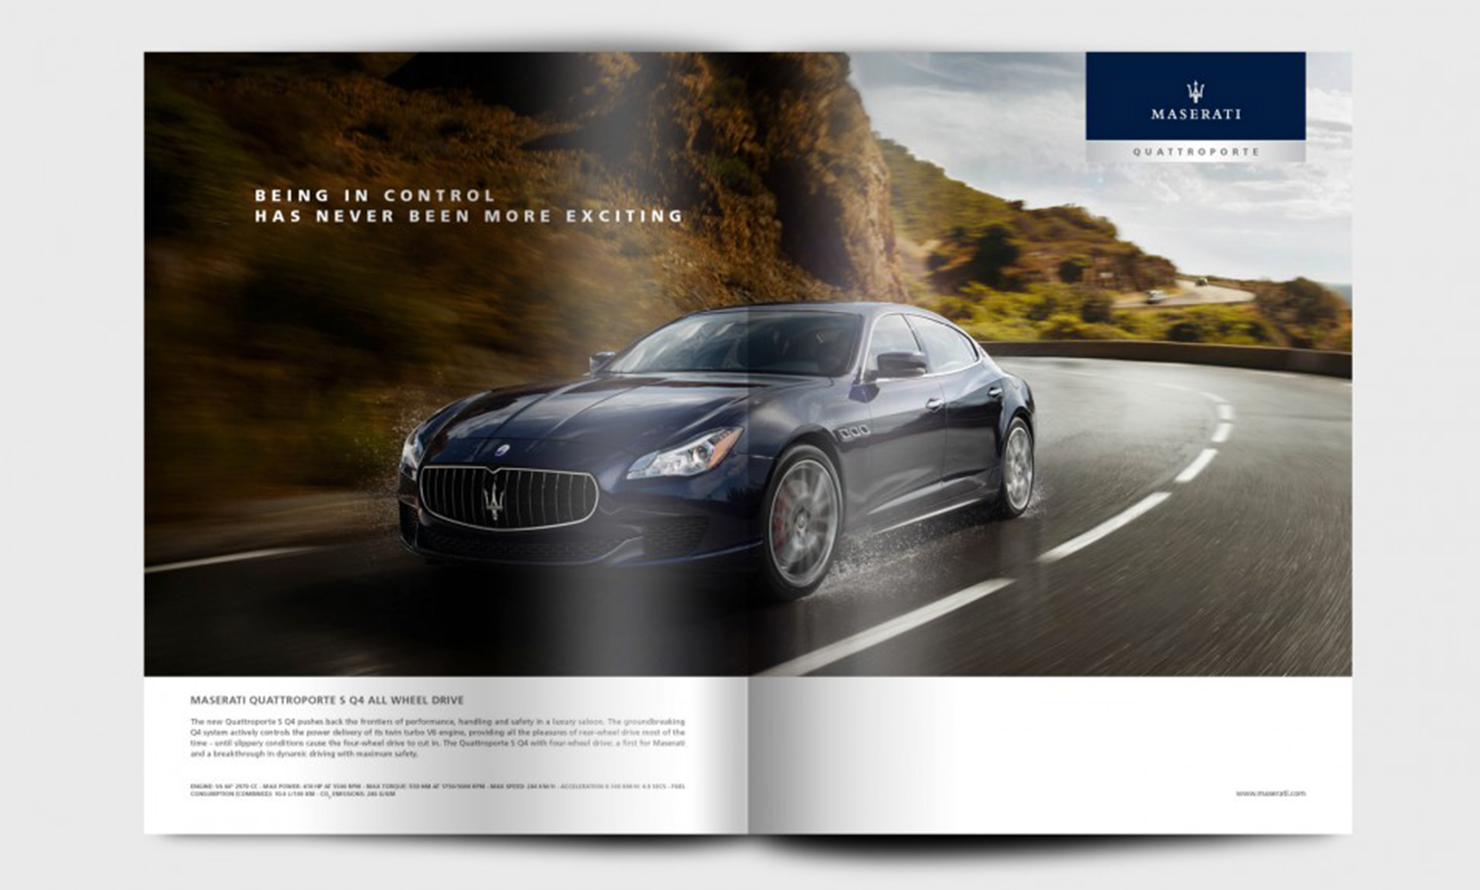 https://www.kubelibre.com/uploads/Slider-work-tutti-clienti/maserati-quattroporte-SQ-4-AWD-being-in-control-has-never-been-more-exciting-1.jpg